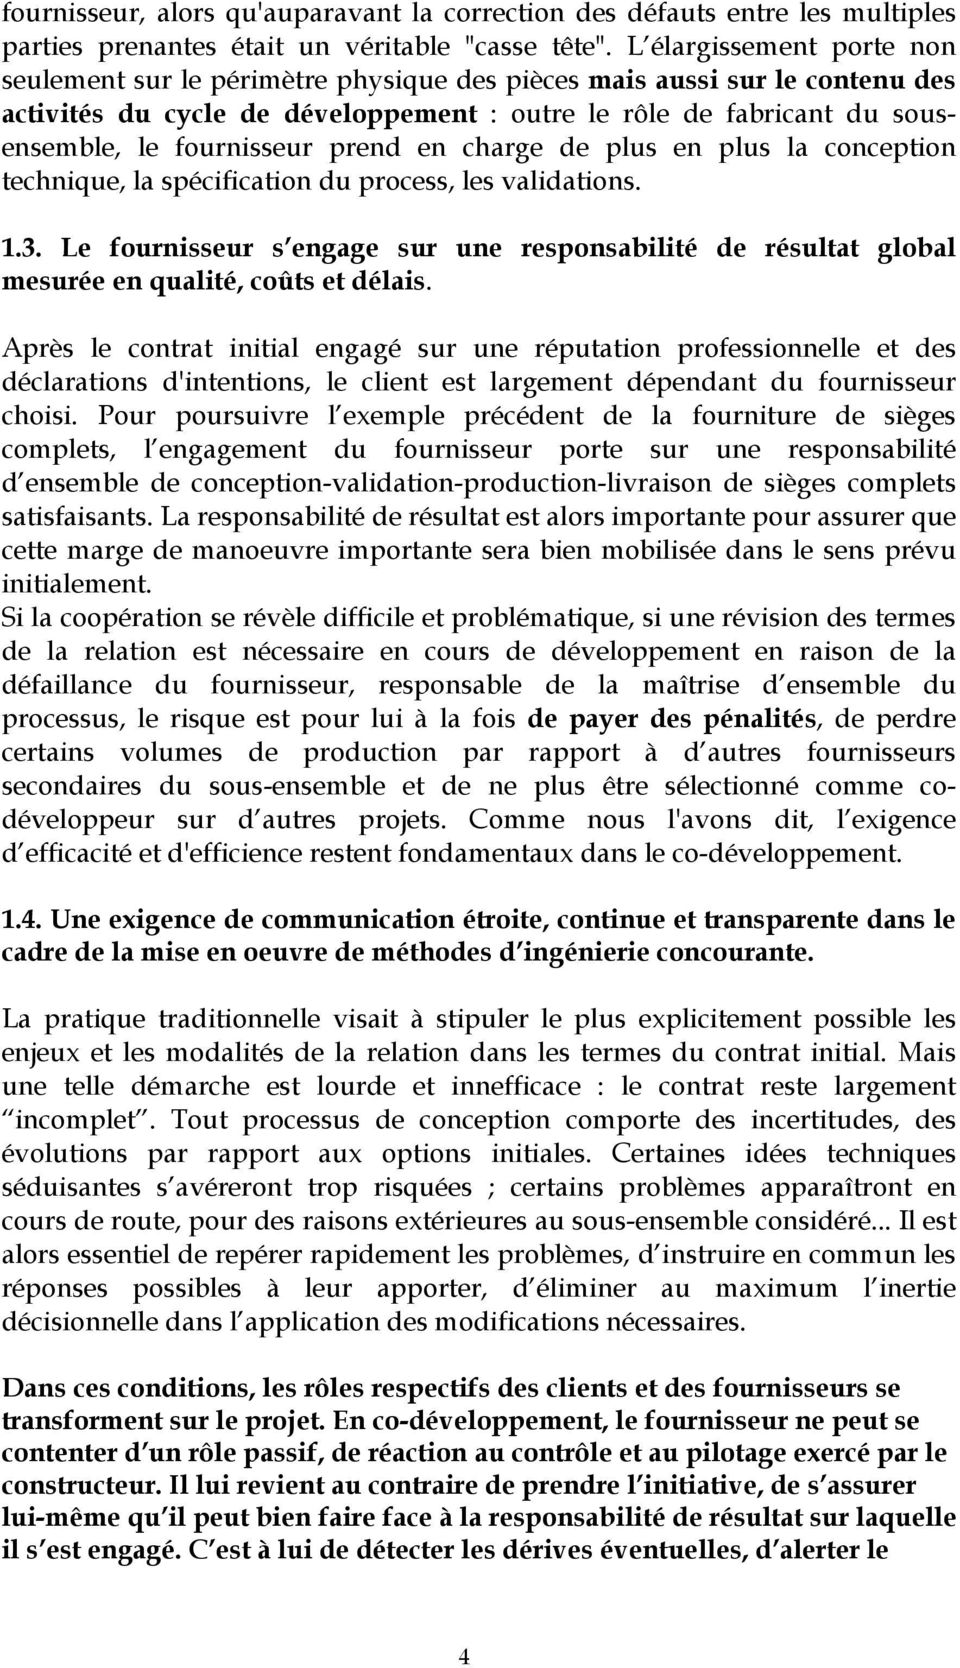 prend en charge de plus en plus la conception technique, la spécification du process, les validations. 1.3.